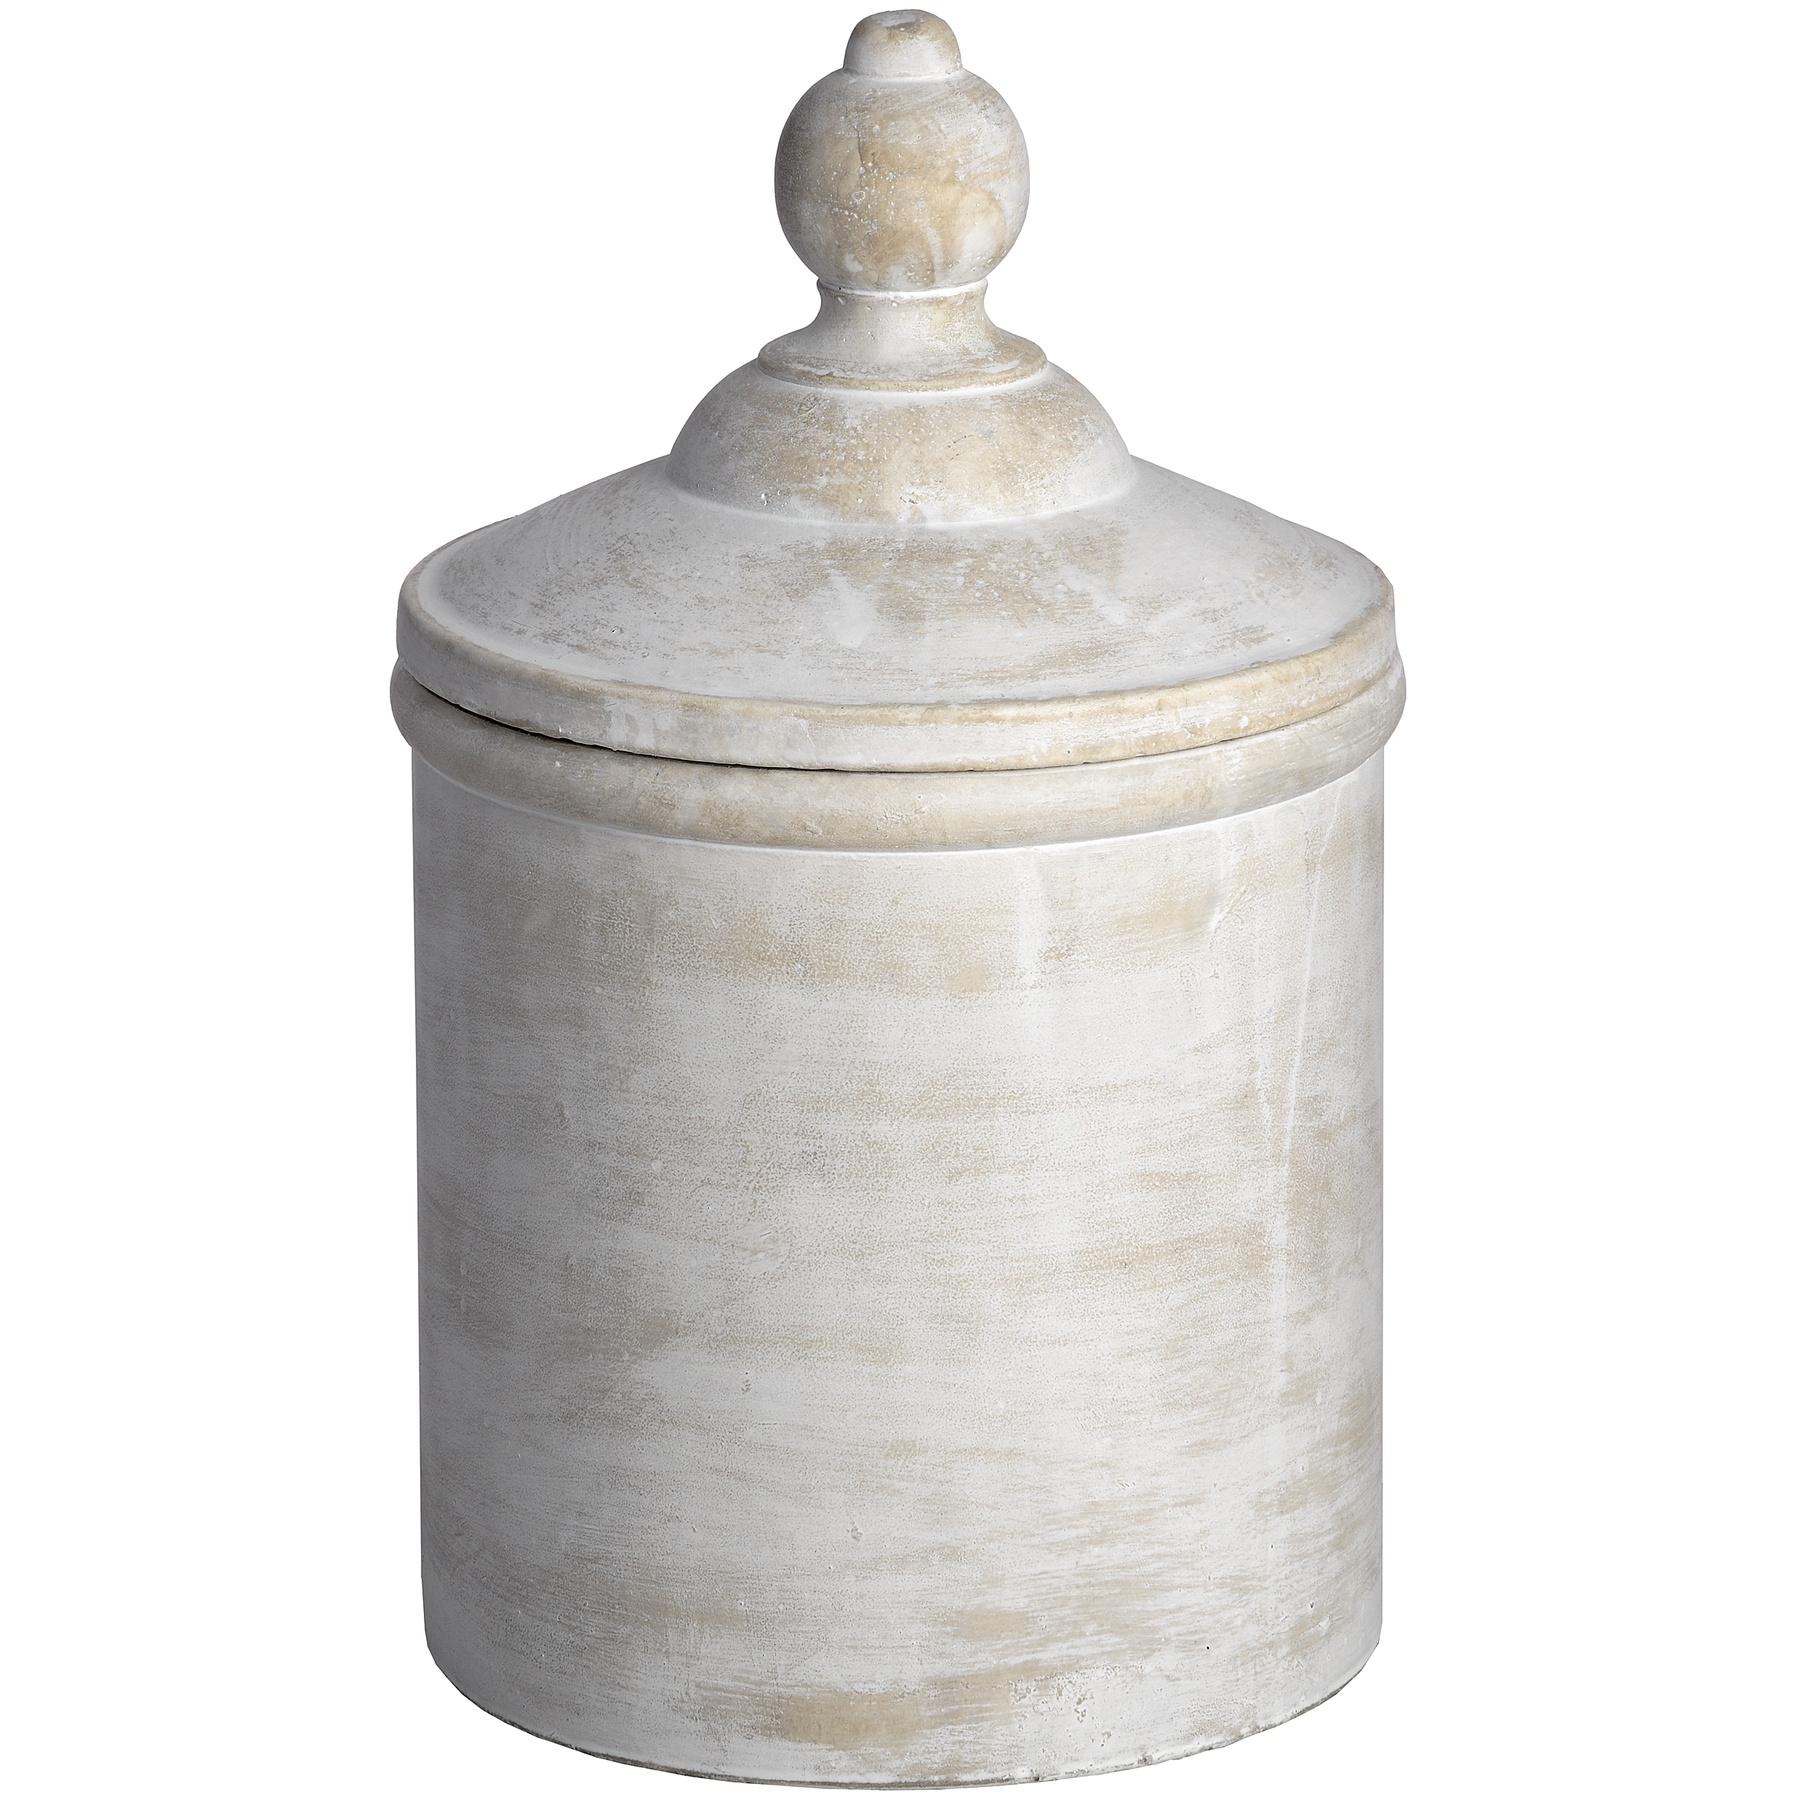 Antique White Cannister - Image 1